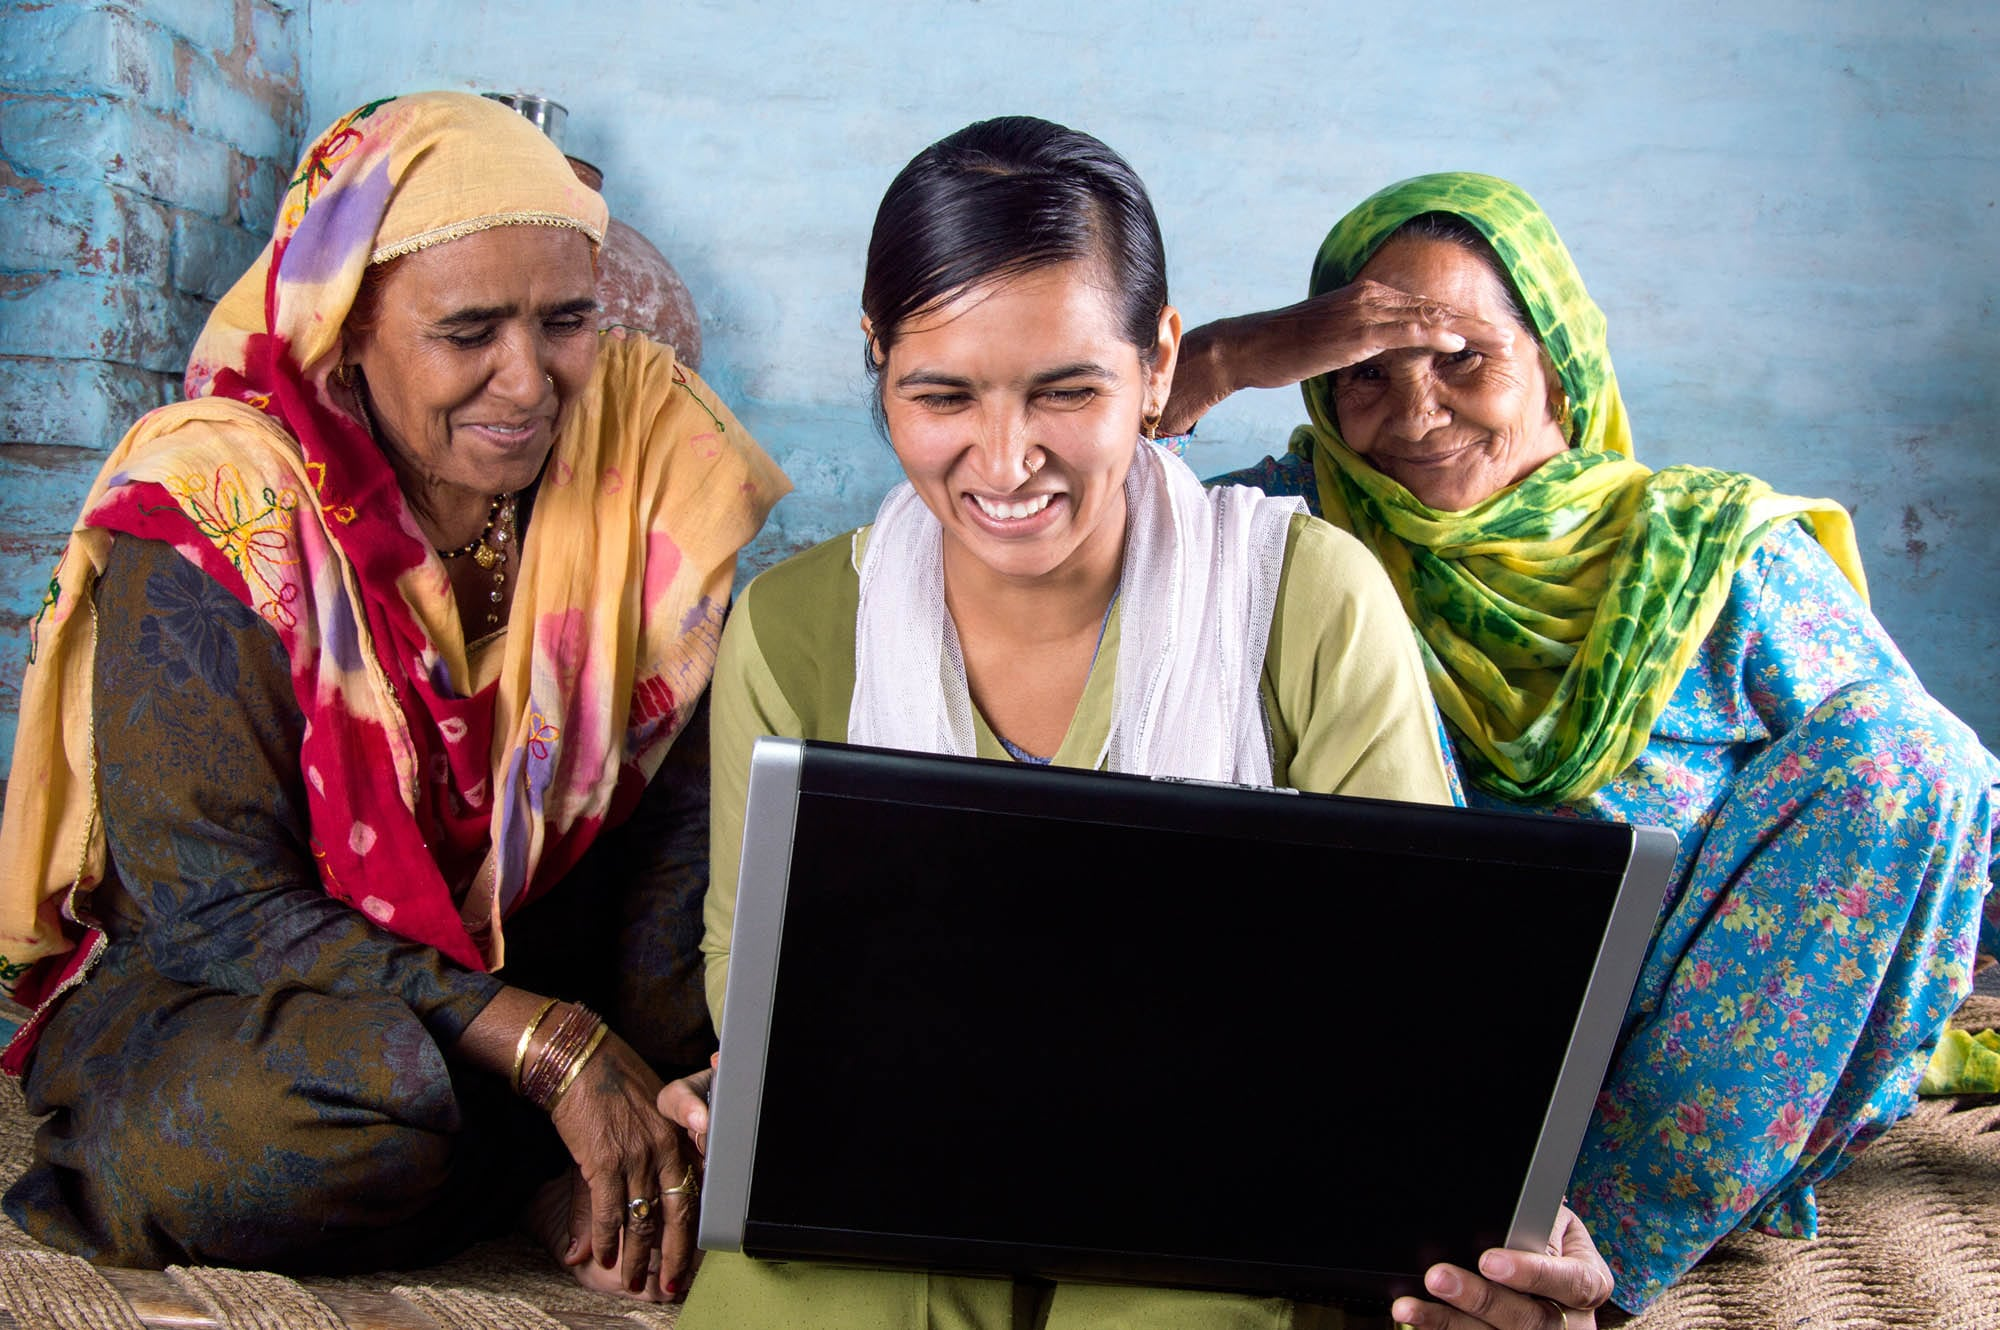 Confident  Rural Indian Young Girl Holding Laptop With Two Senior Women. They All Are Smiling While Holding Laptop.